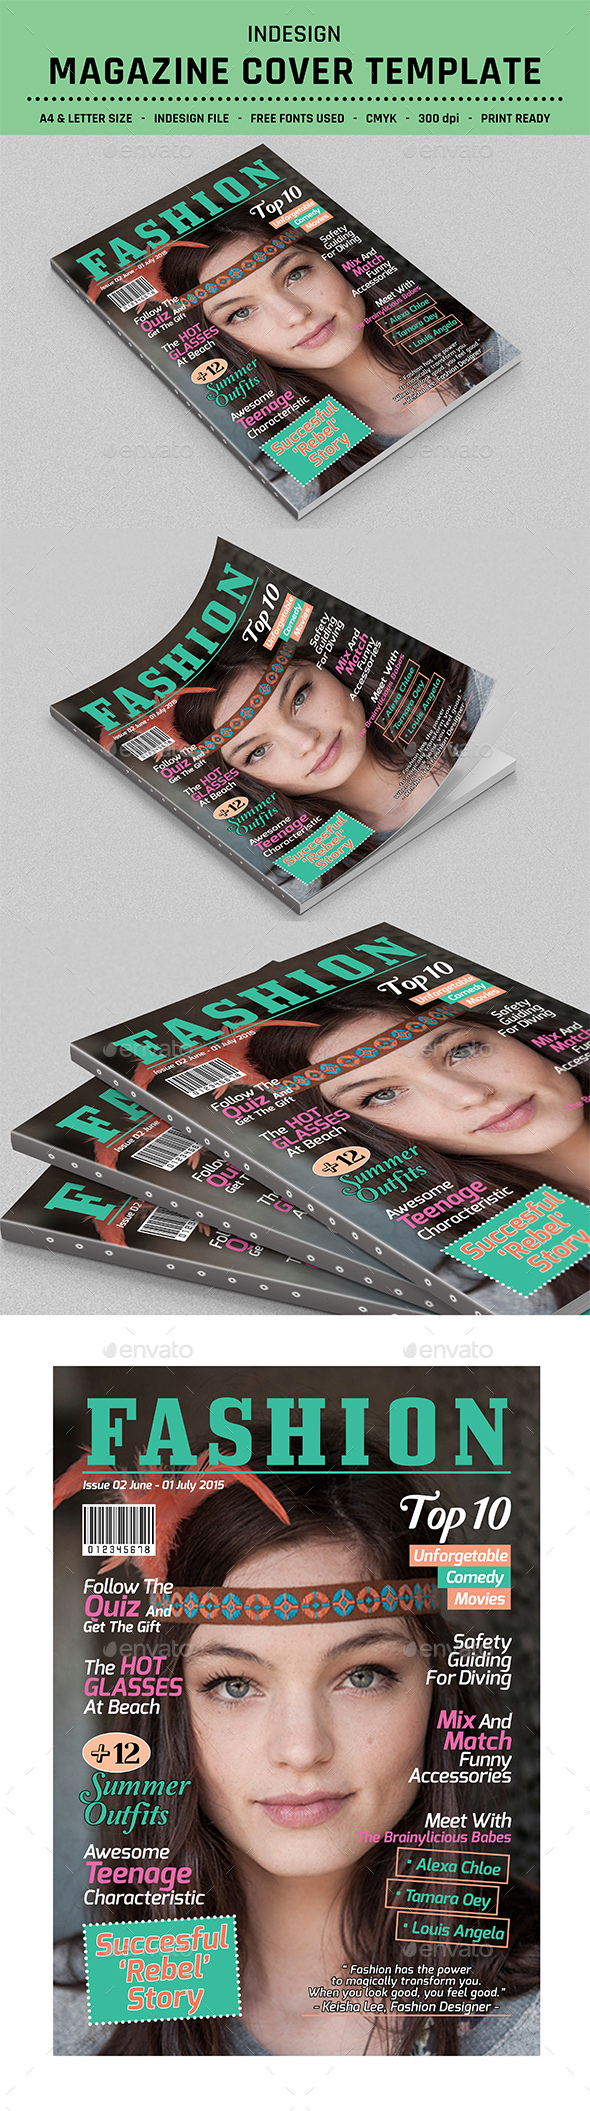 Magazine Cover Template Indesign - Magazines Print Templates